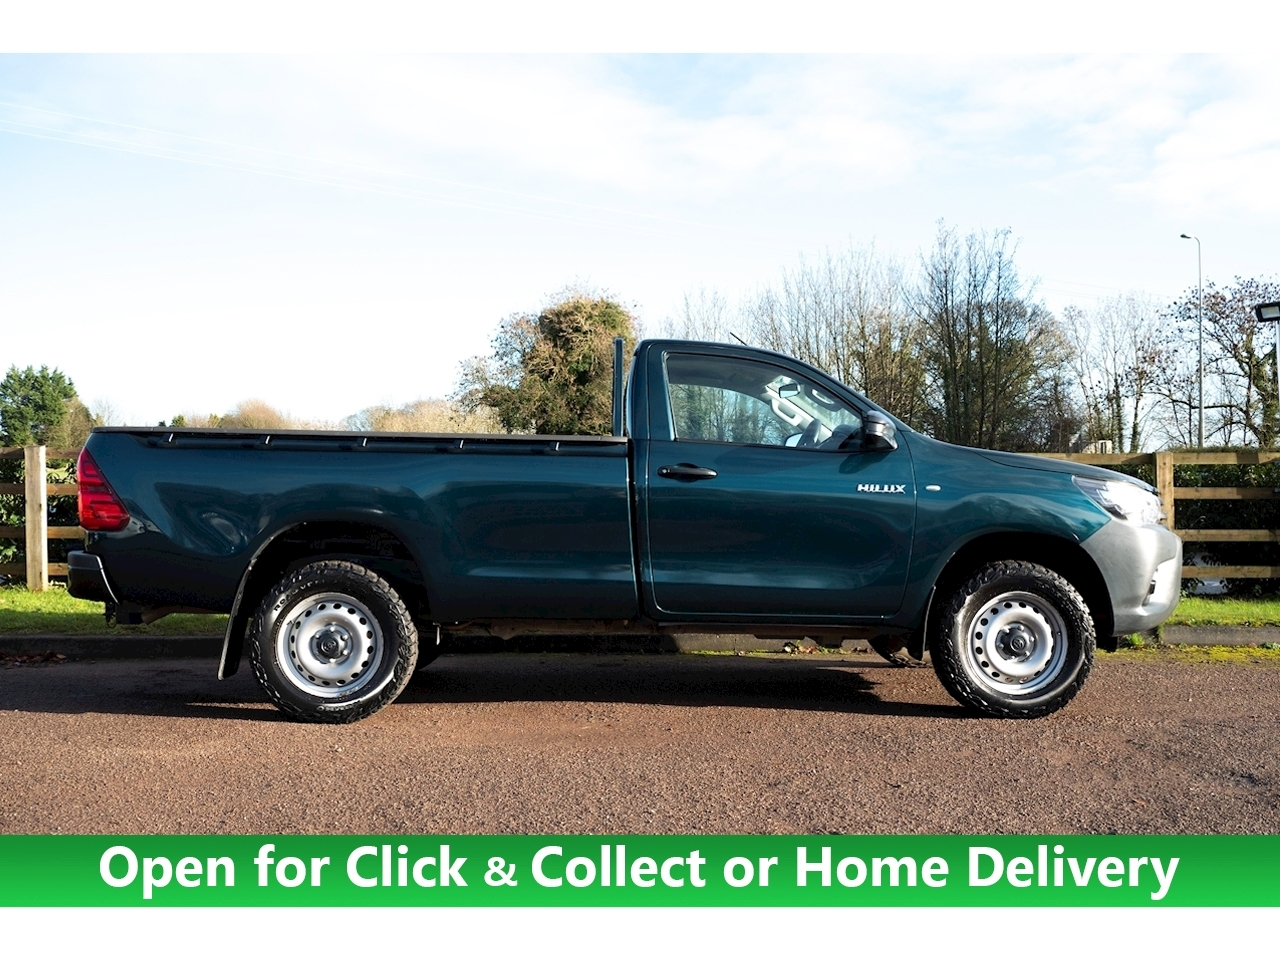 Toyota Hilux Active 4Wd D-4D S/C Light 4X4 Utility 2.4 Manual Diesel